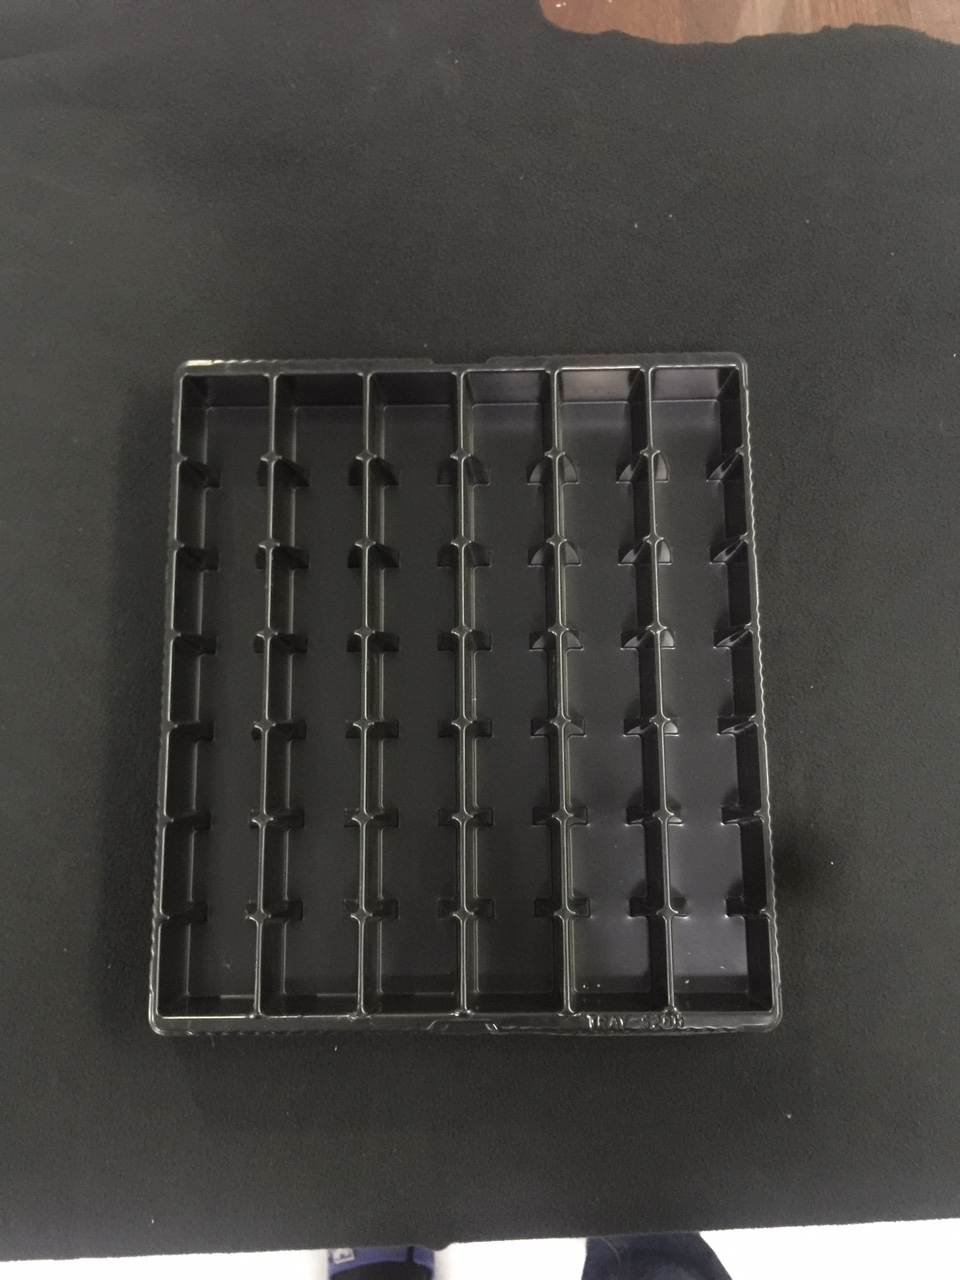 Plastic trays for electronic components